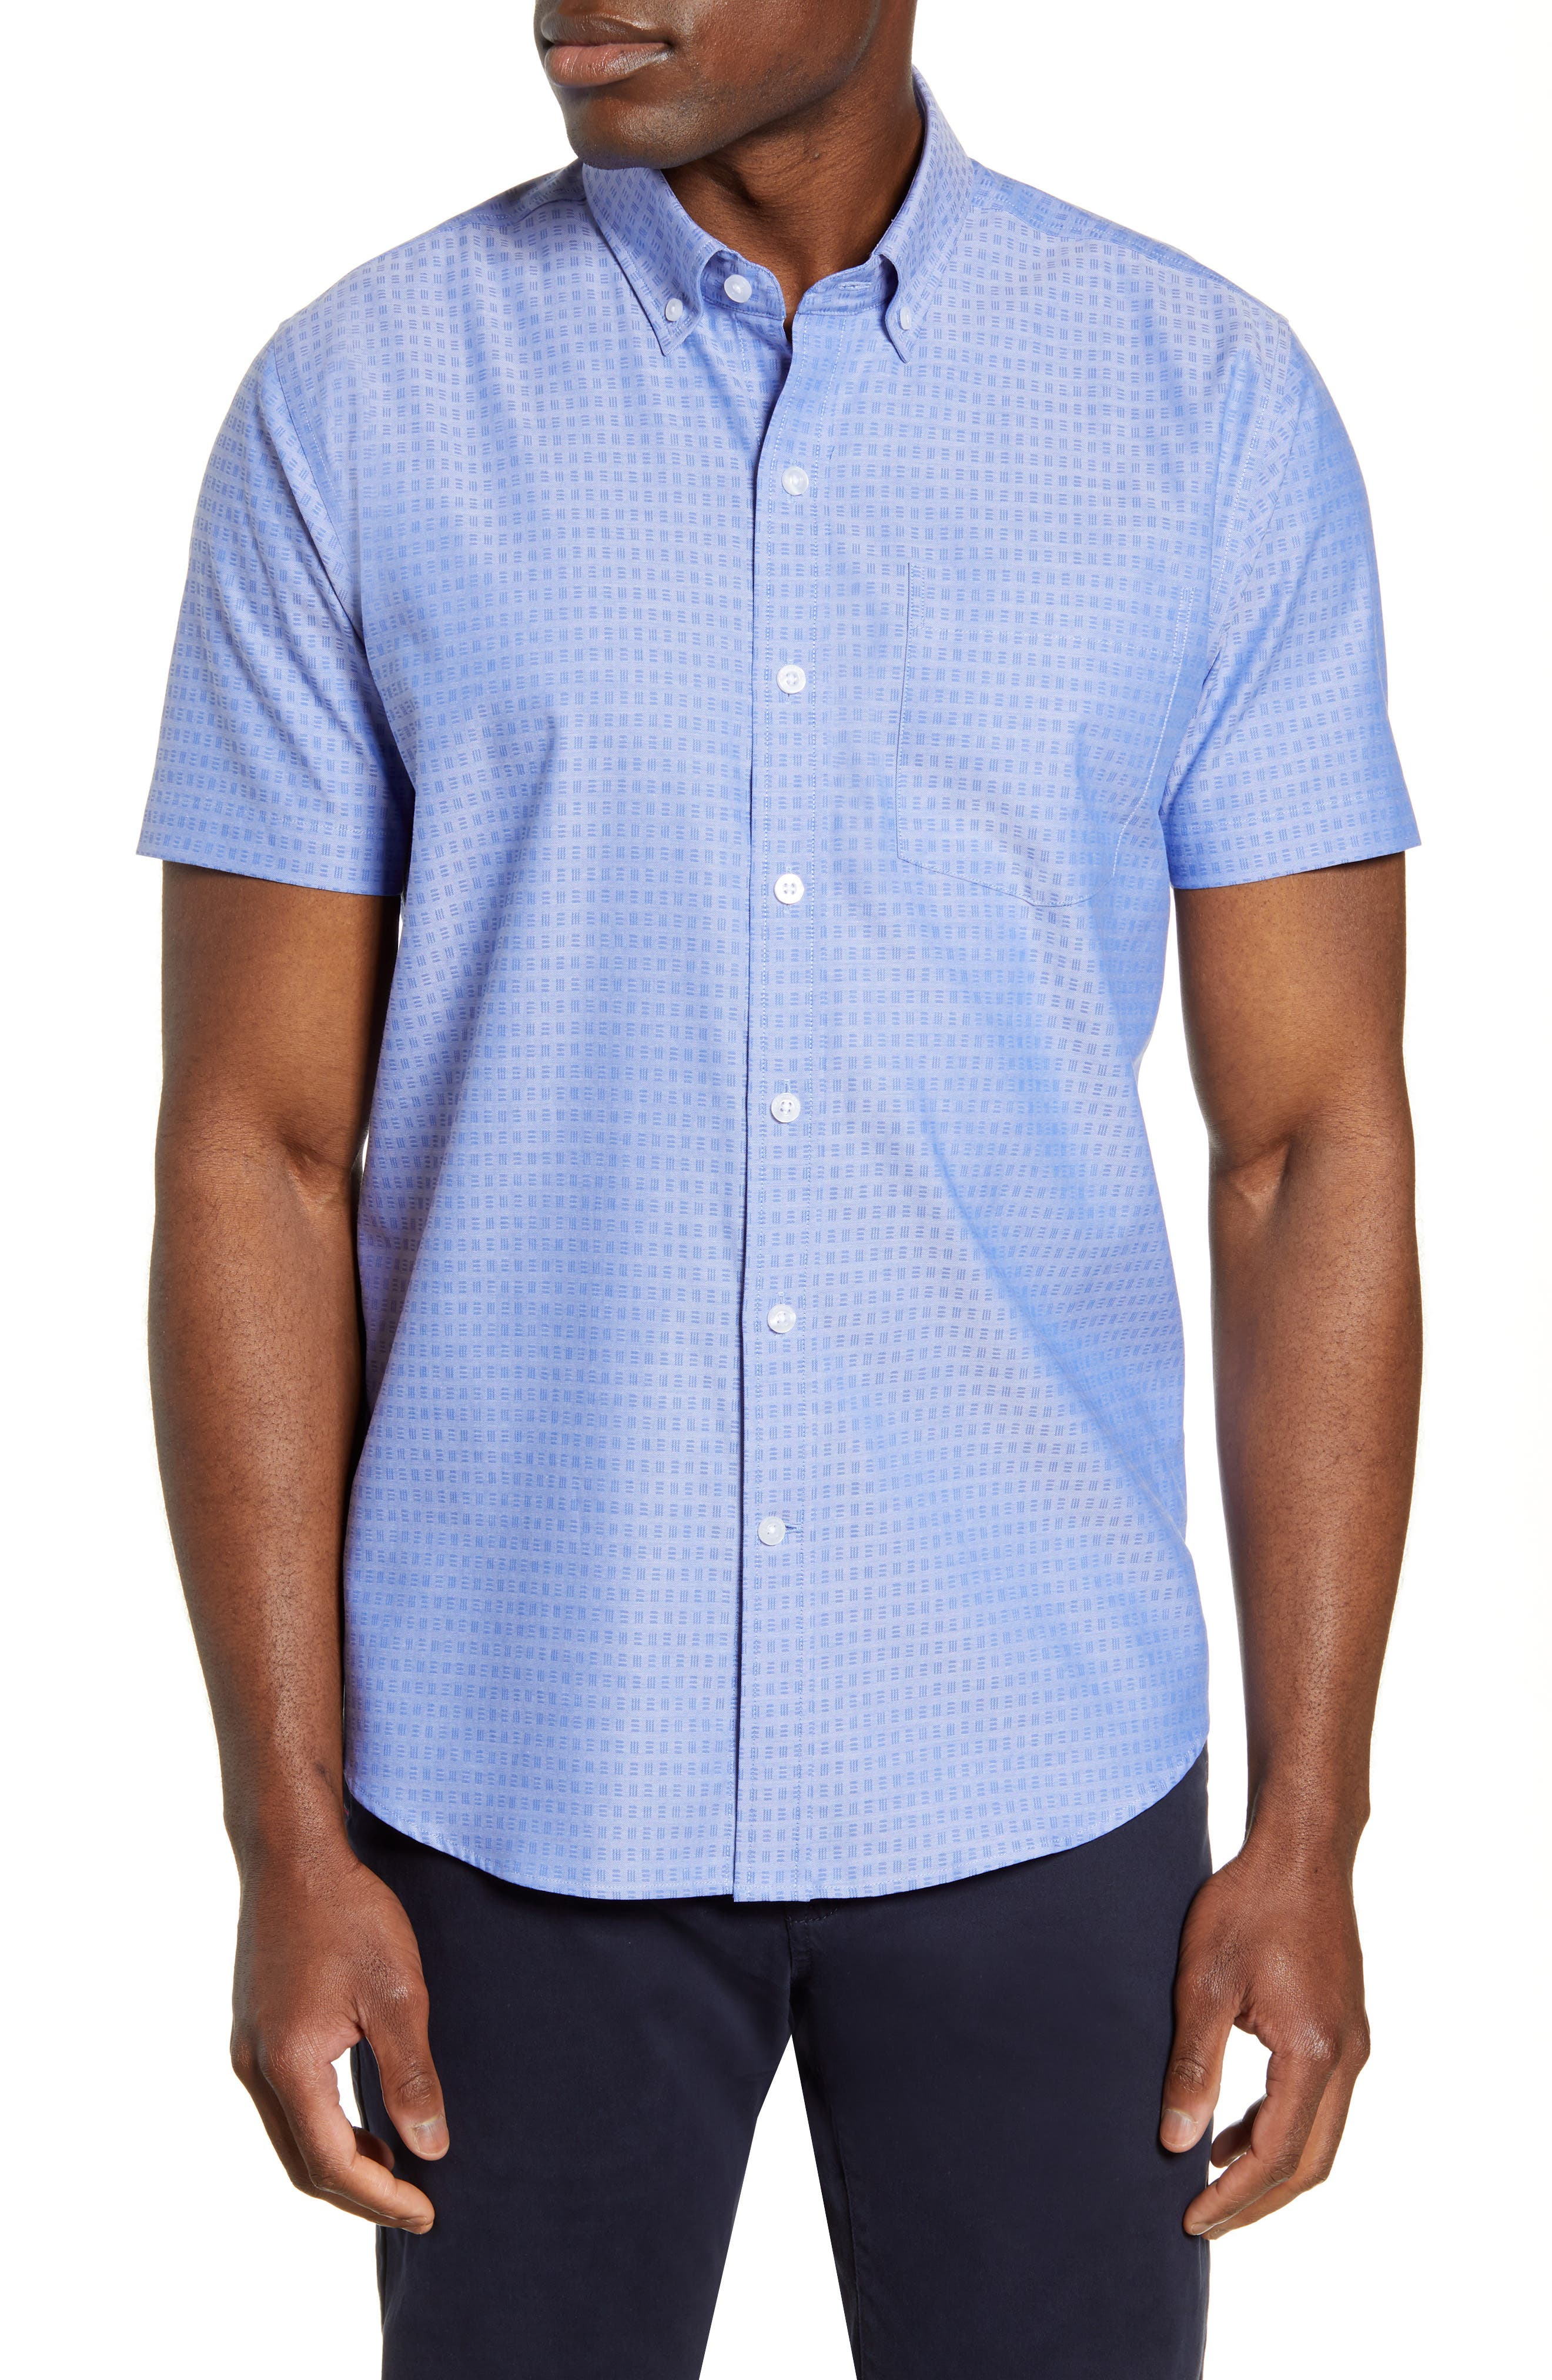 Three-bar squares neatly grid a jacquard button-down shirt tailored in a comfortable, easy-wearing fit from tonal cotton twill. Style Name: Cutter & Buck Strive Classic Fit Jacquard Short Sleeve Button-Down Sport Shirt. Style Number: 5887544. Available in stores.